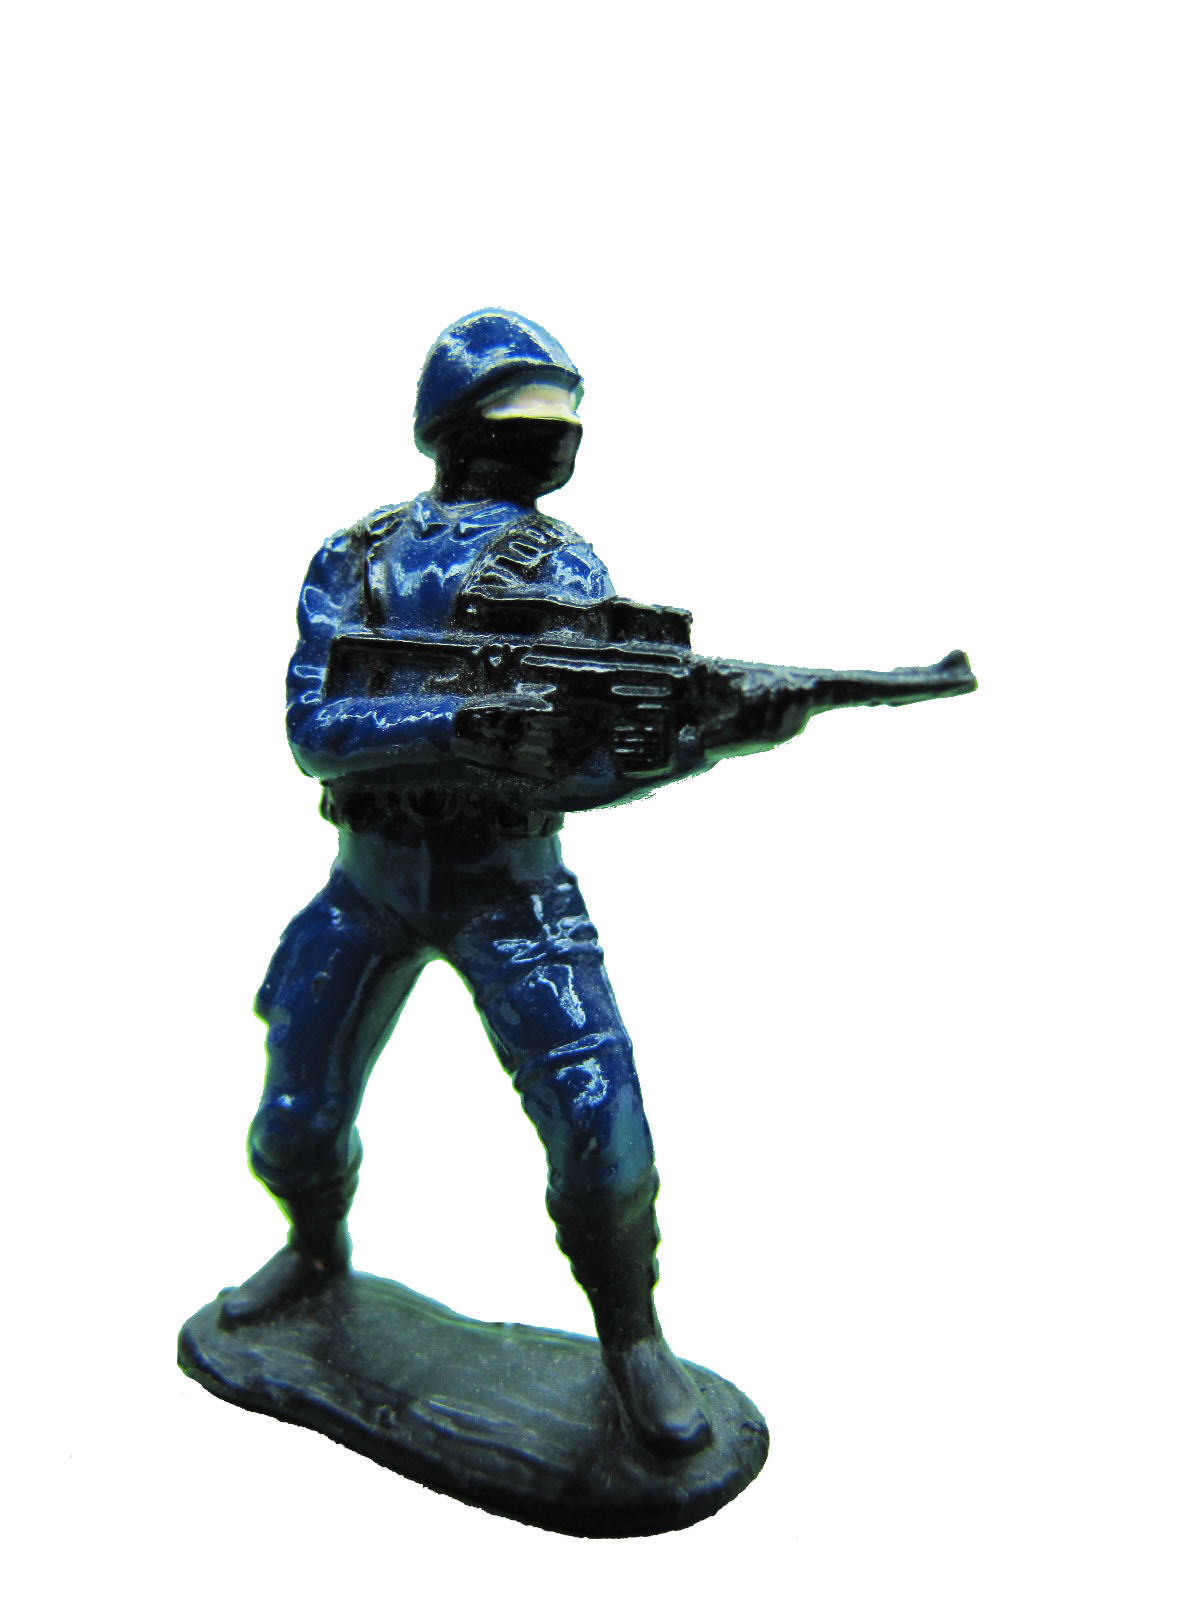 GIJoe Micro Series Cobra Soldier